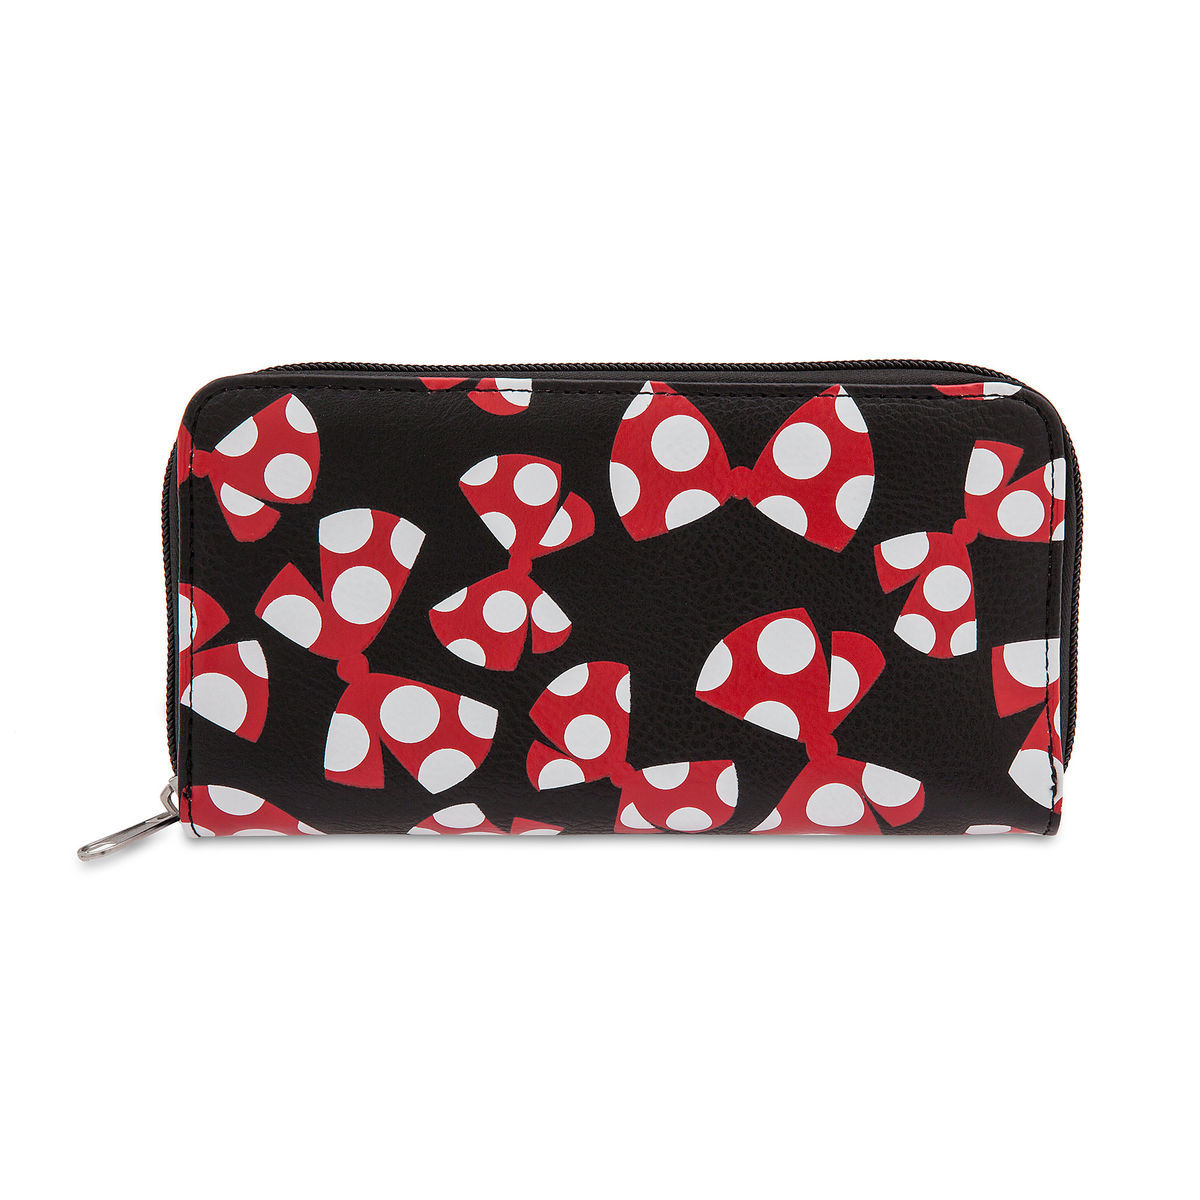 946a90f4aec Add to My Lists. Disney Wallet - Minnie Mouse Bows ...